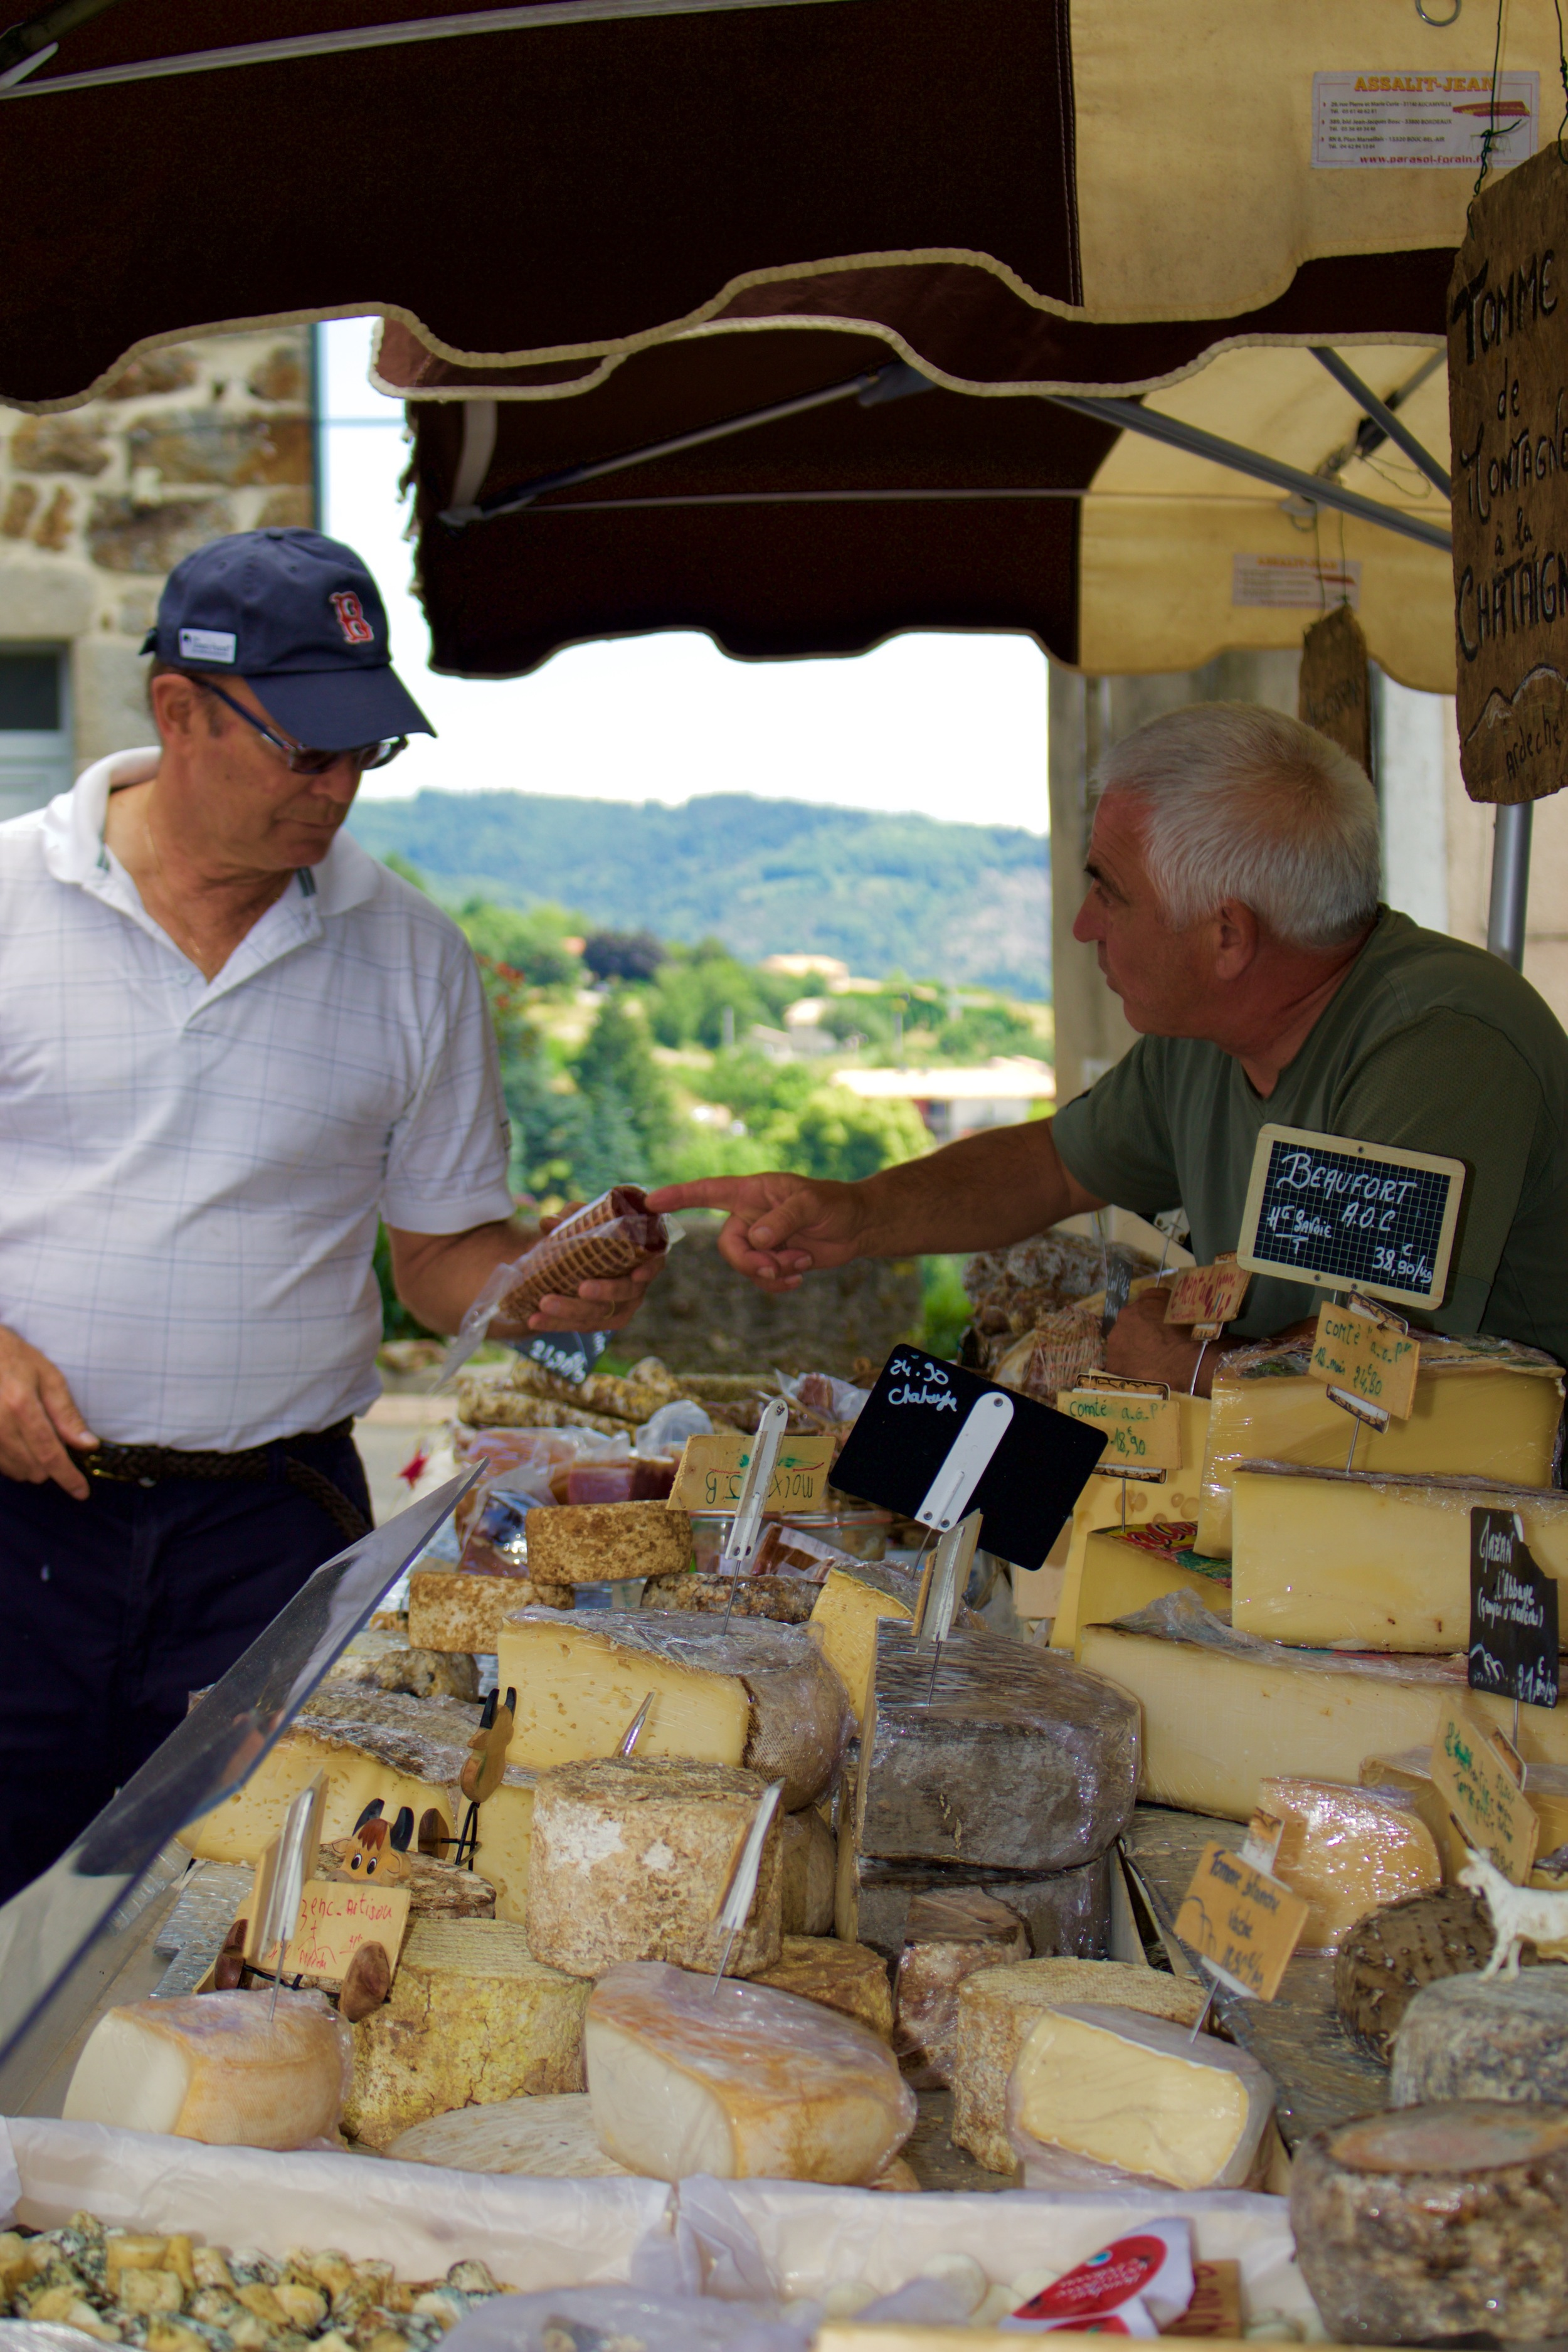 Fernando selecting the finest cheeses and saucissons for the tasting session.